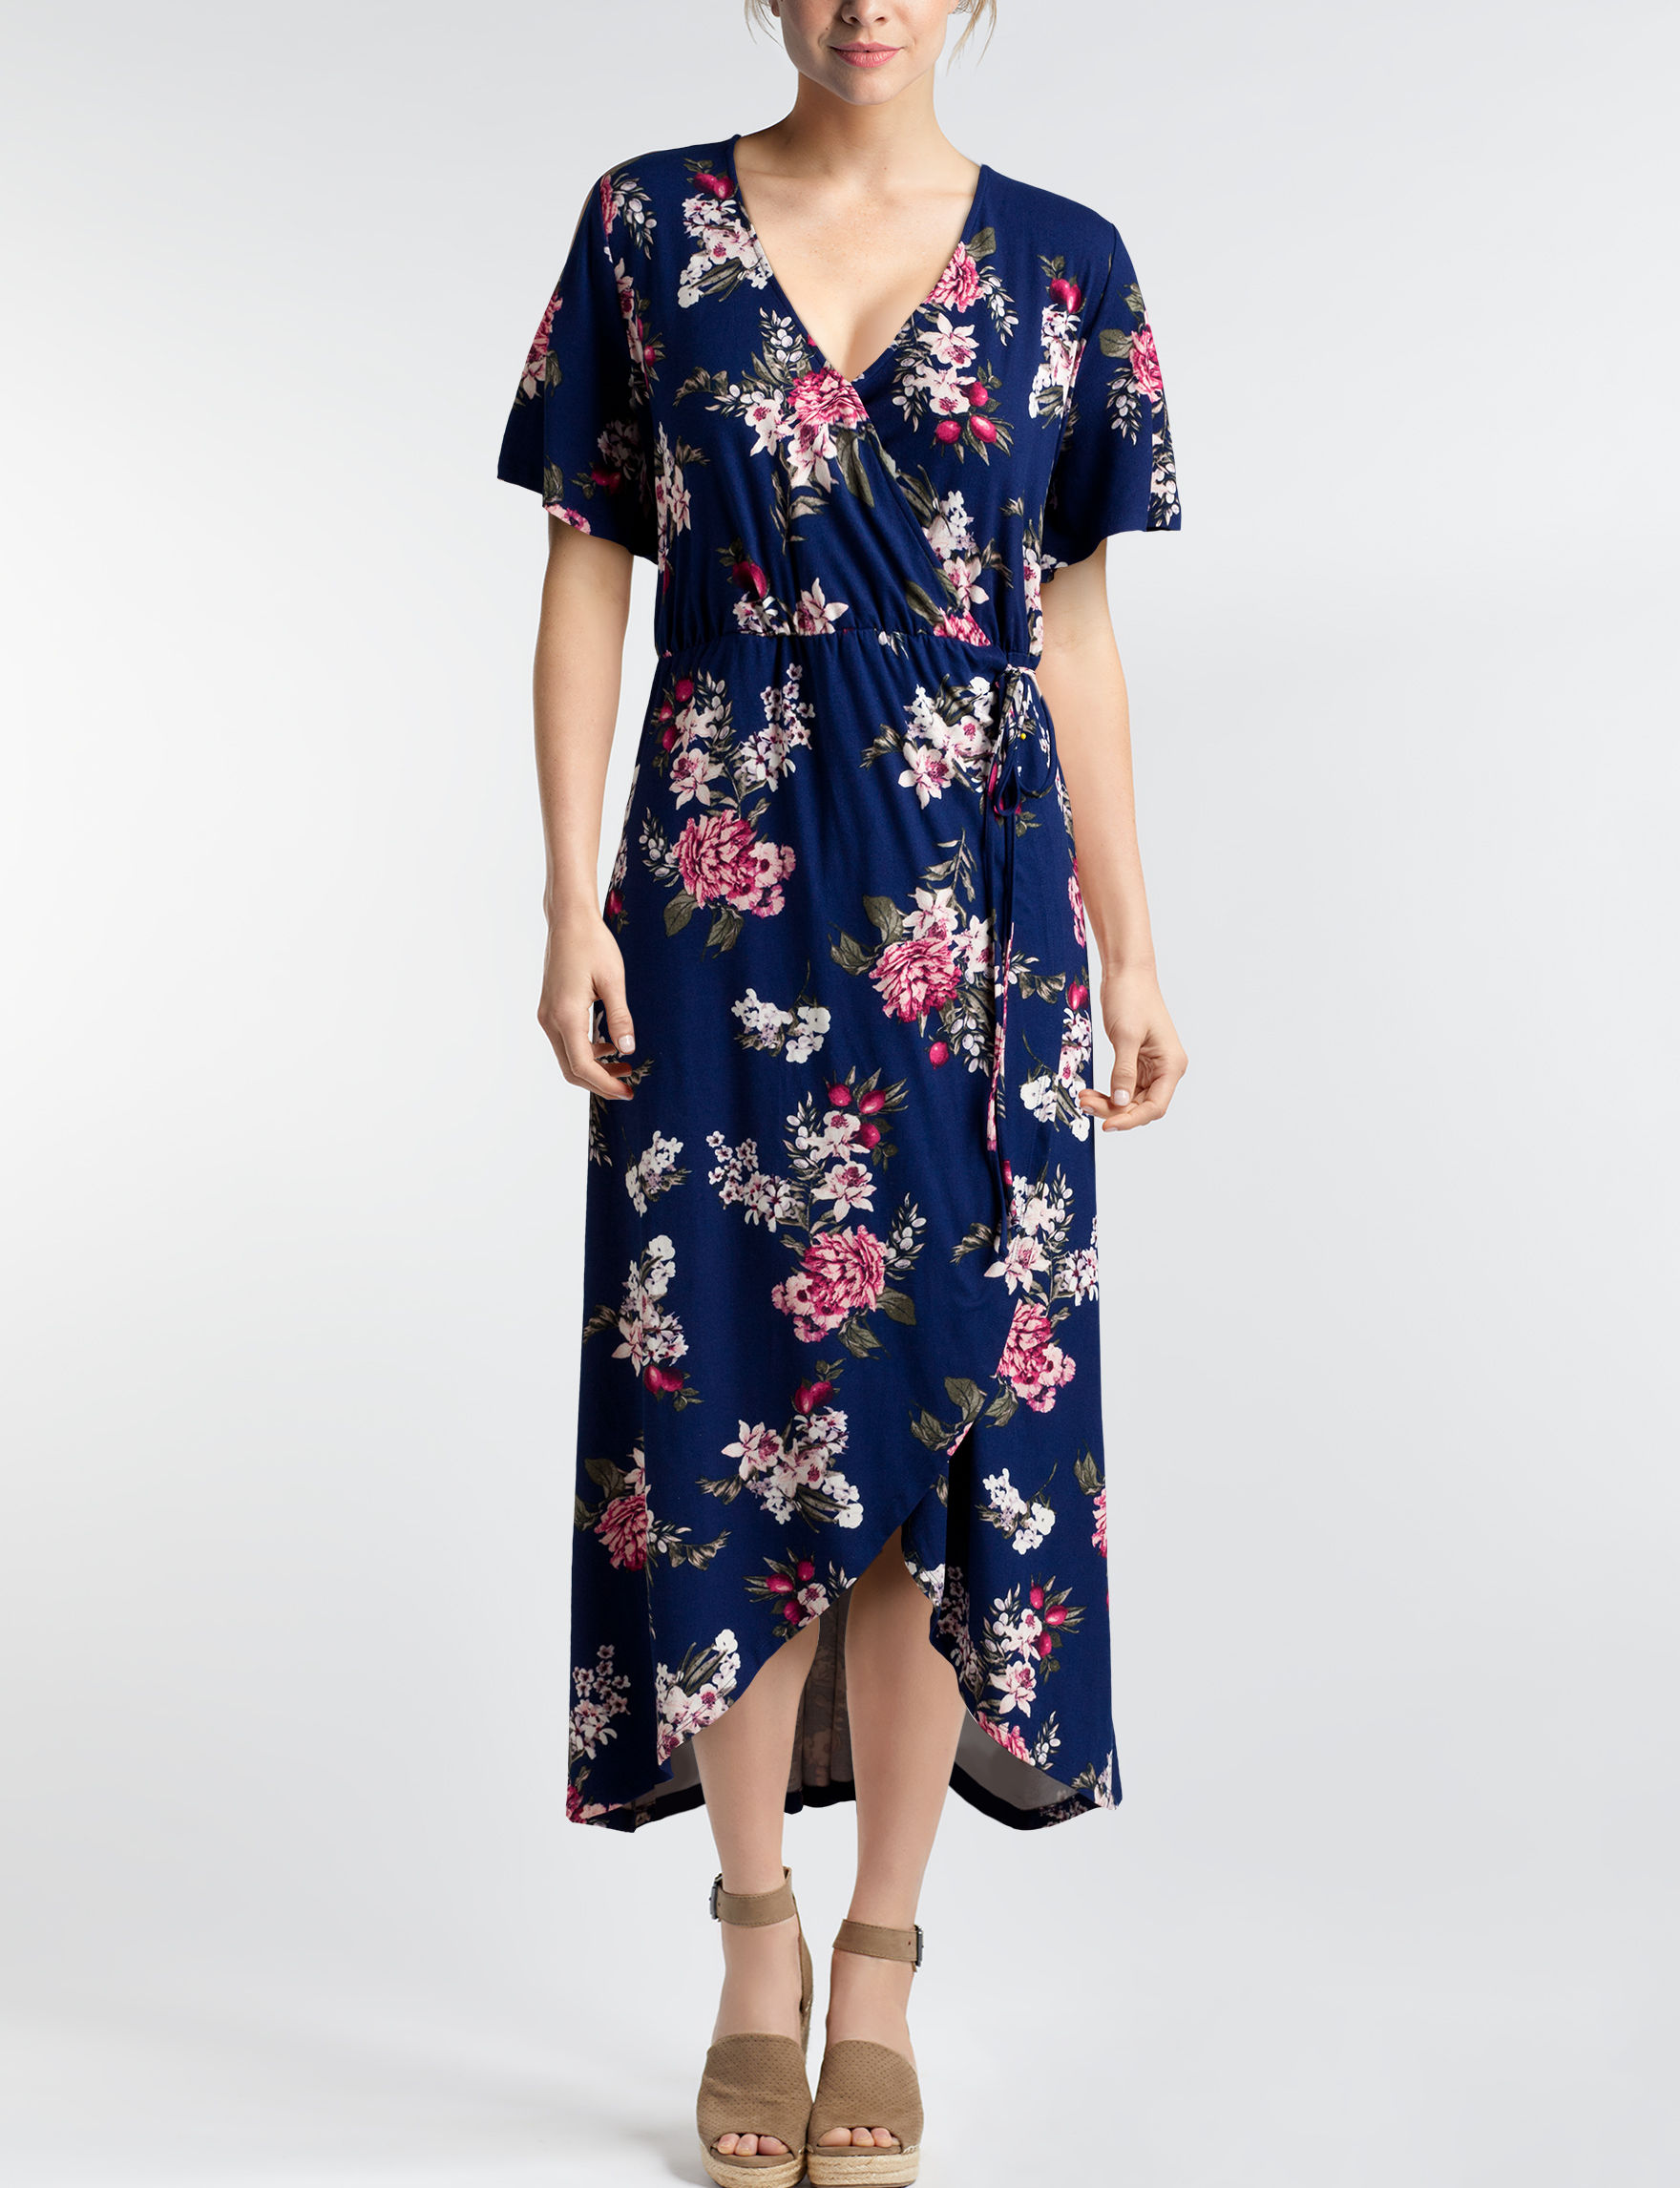 Signature Studio Blue Floral Everyday & Casual Fit & Flare Dresses